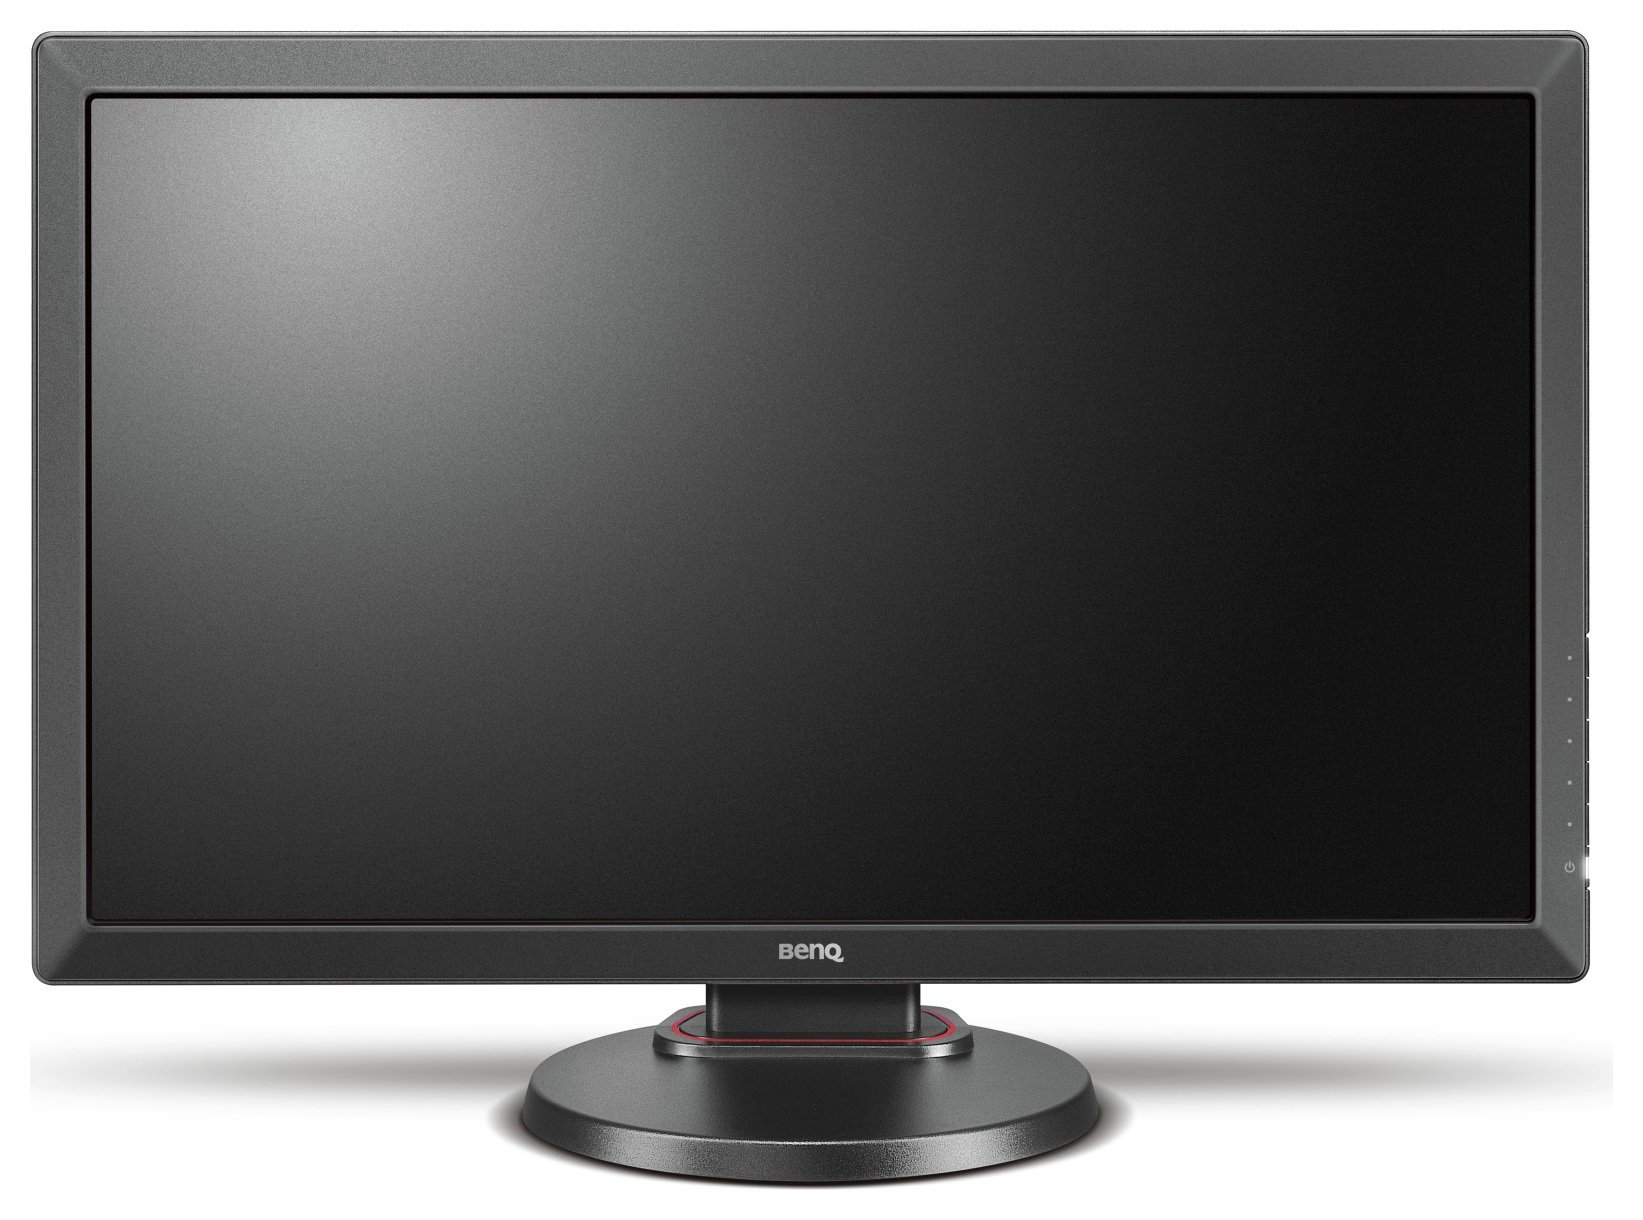 Image of BenQ Zowie RL2460 24 Inch Gaming PC Monitor.